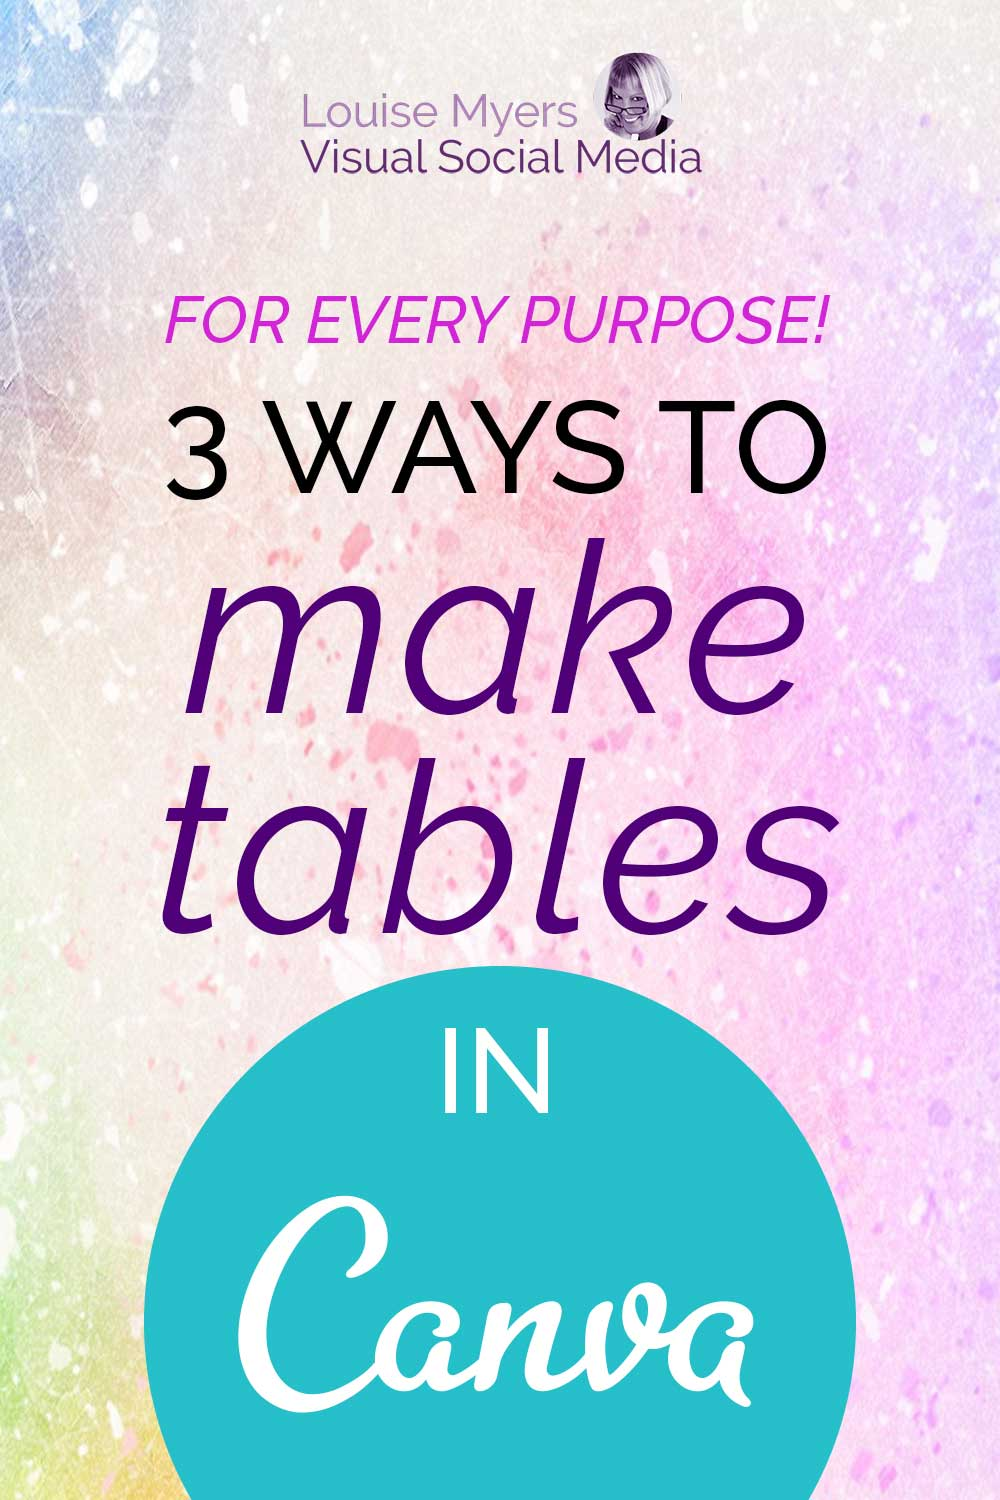 3 ways to make tables in canva text on pastel watercolor background.